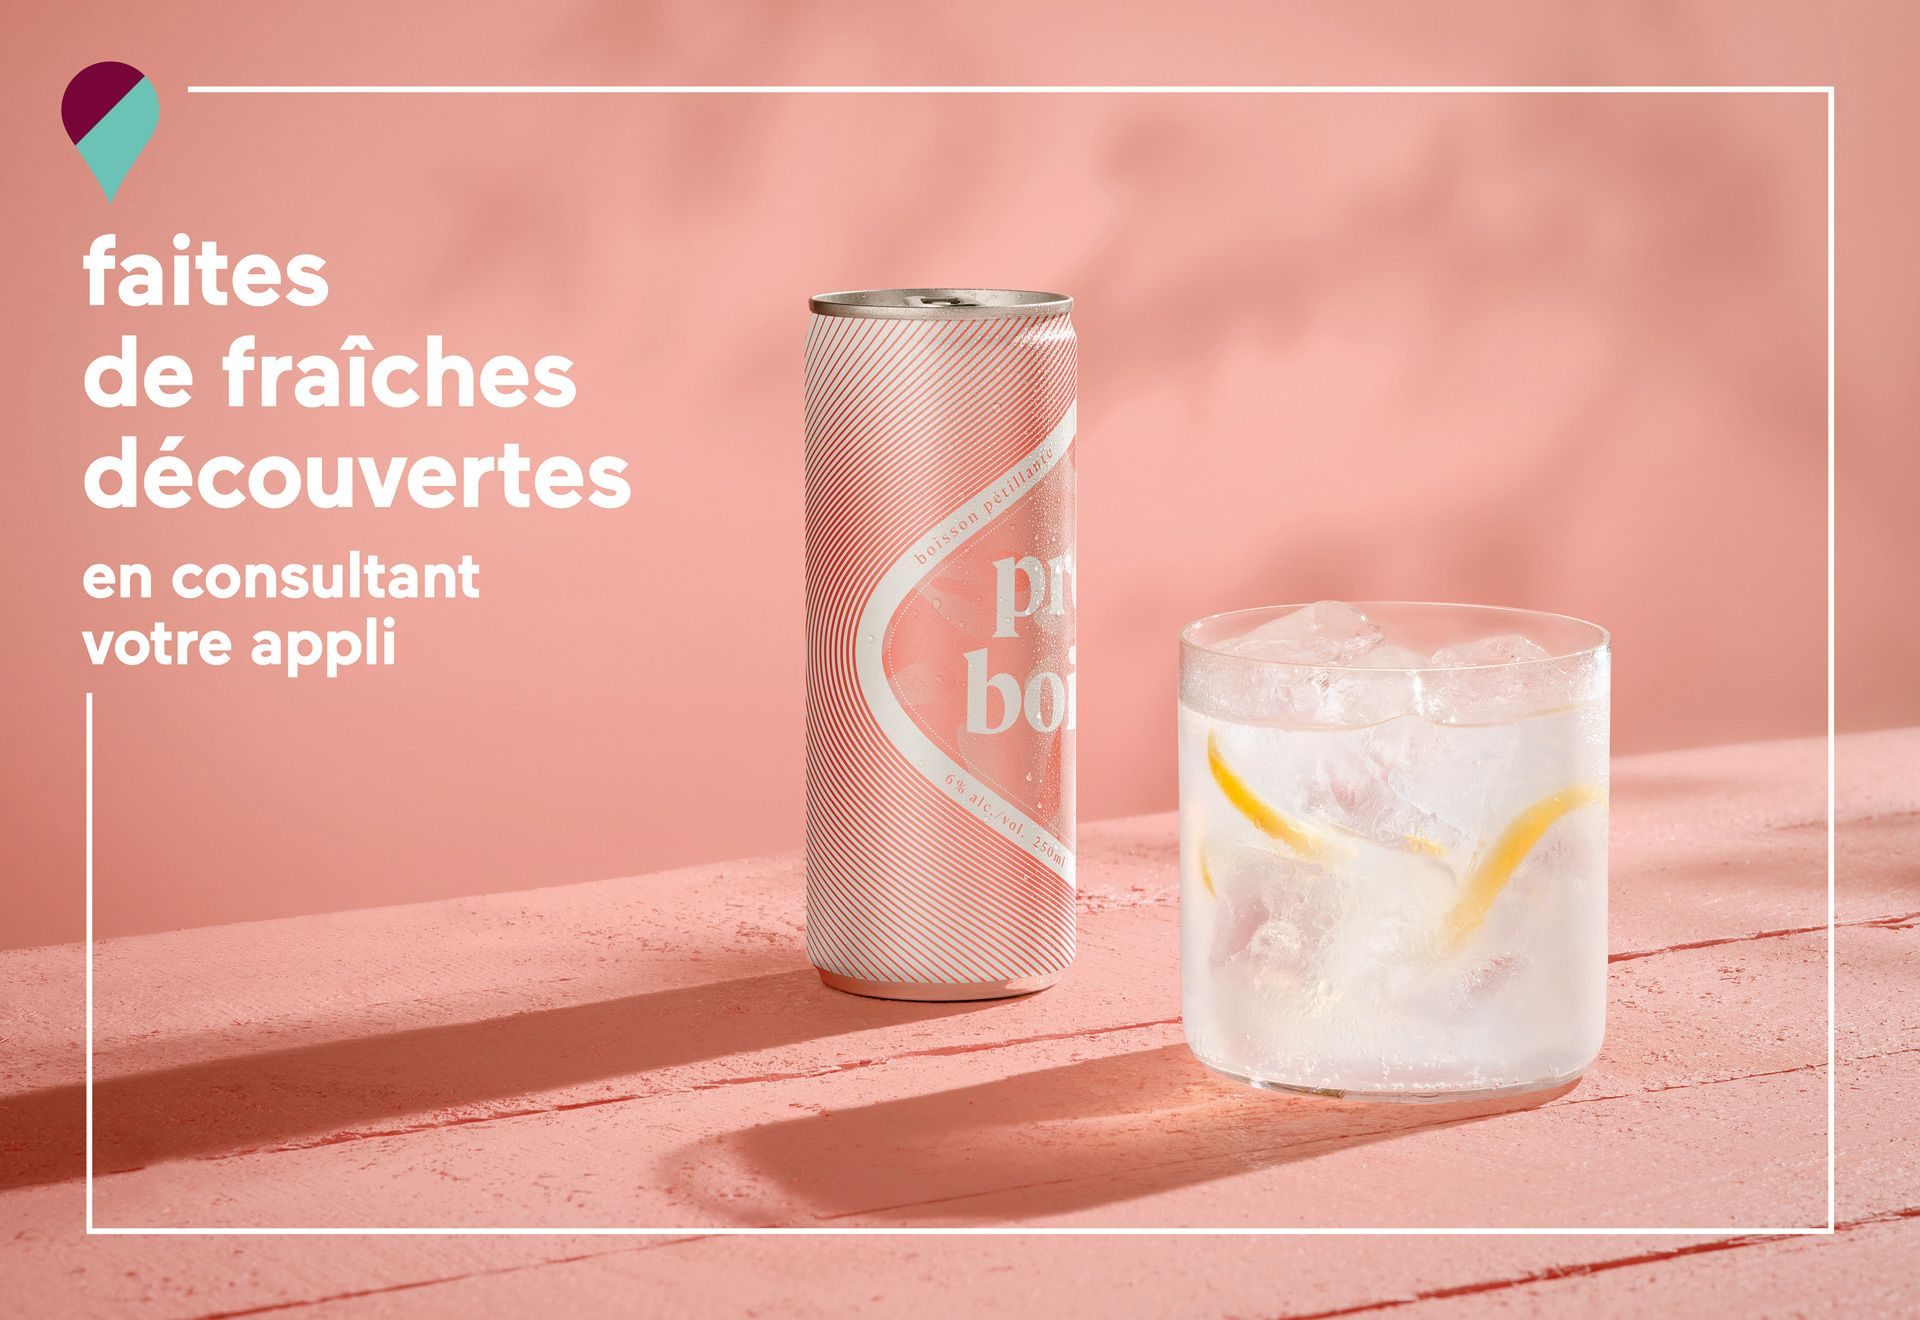 cocktail in can on pink table photographed by Mathieu Levesque for the SAQ Make Inspired Choices campaign